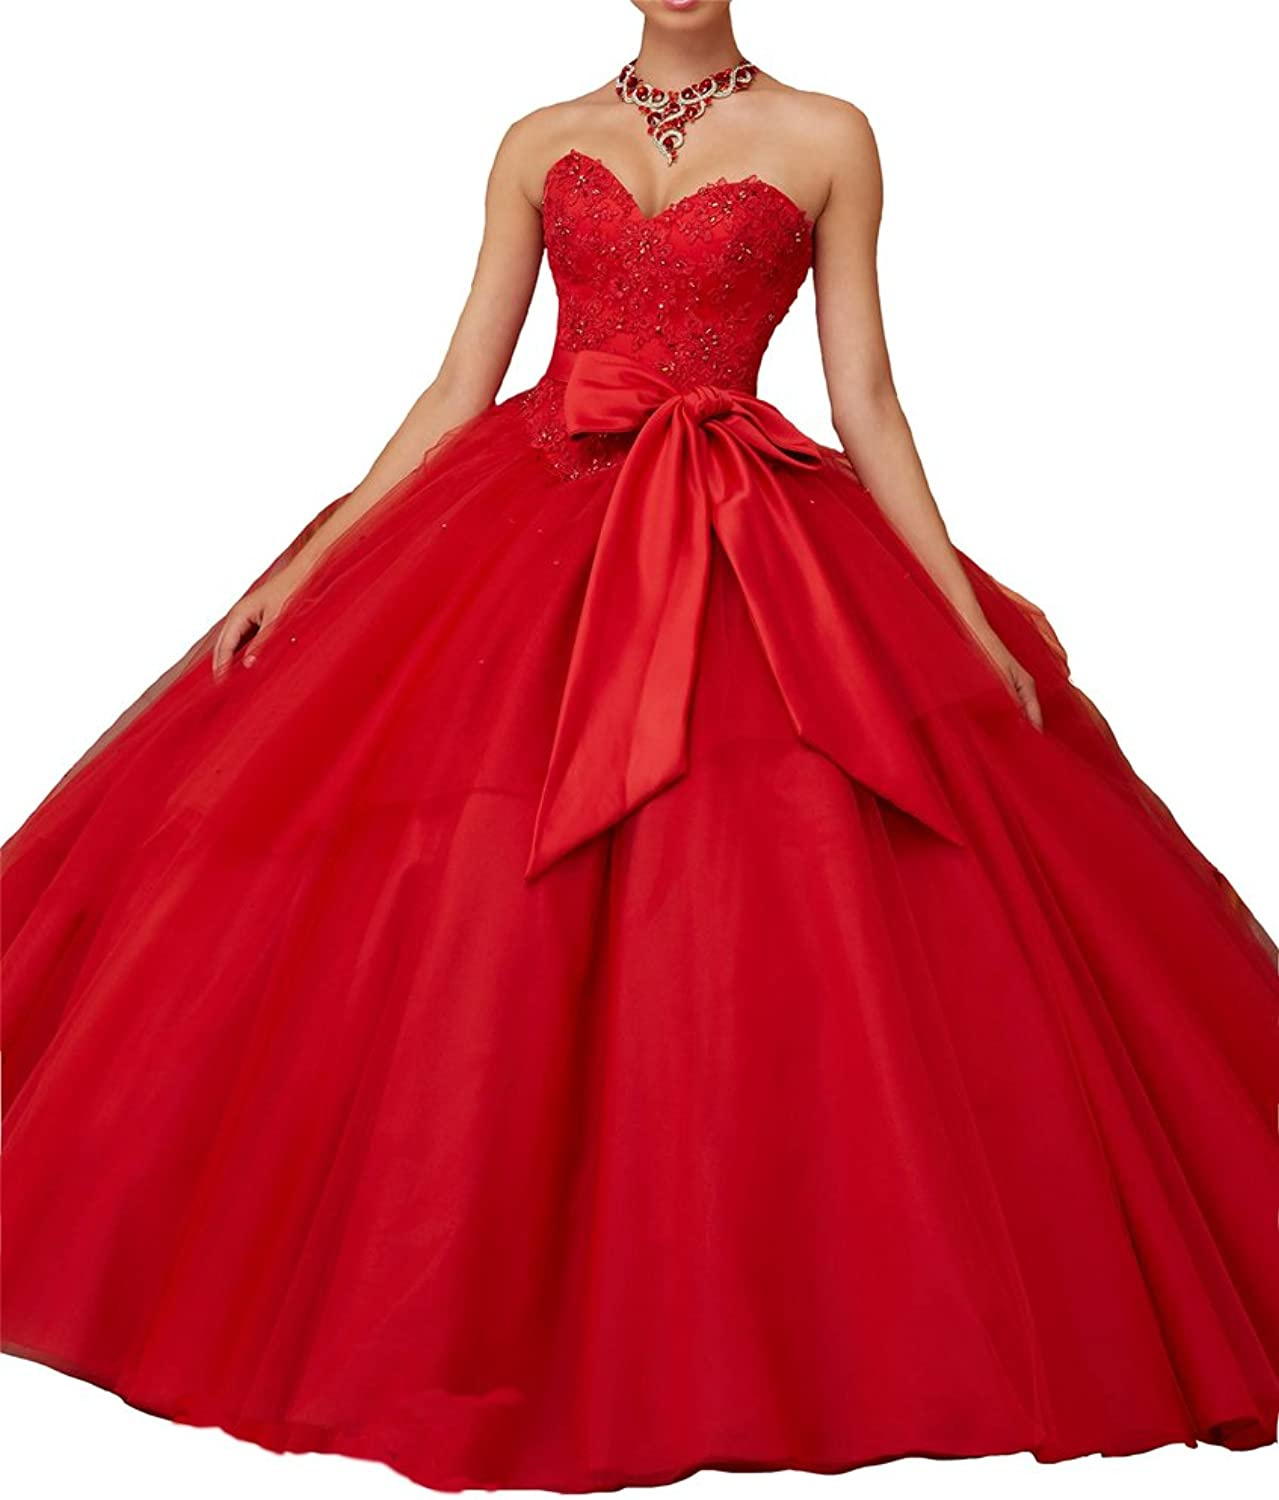 Yang Sweet 16 Girls Pageant Dress Women's Quinceanera Dresses with Bow